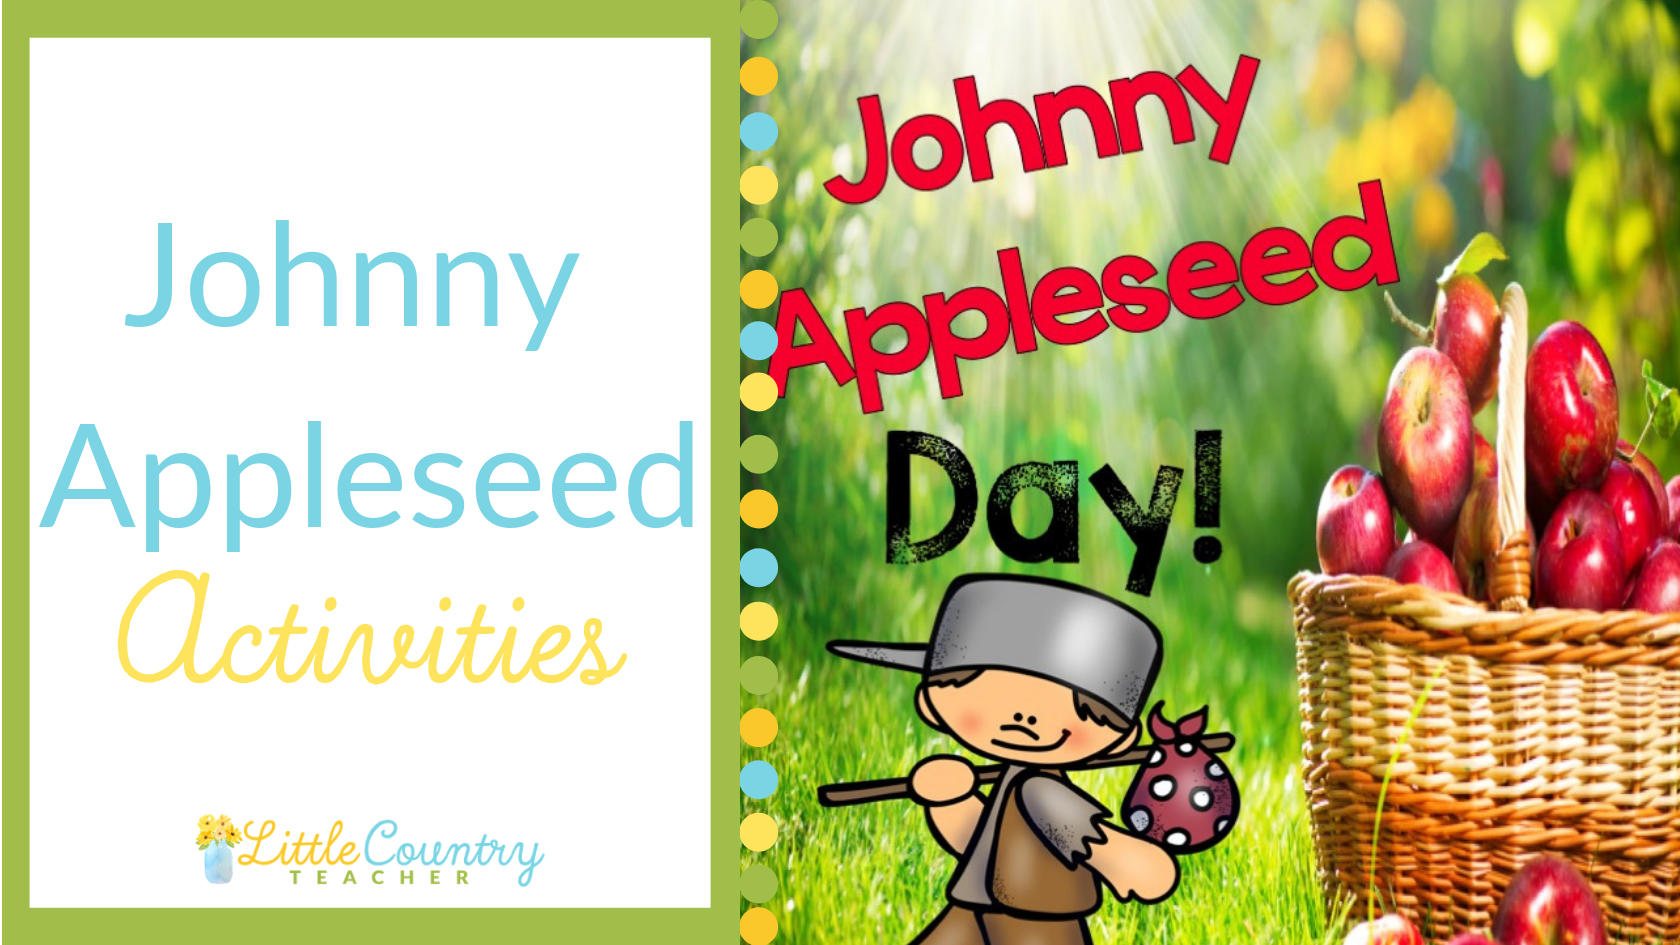 Johnny-Appleseed-Day